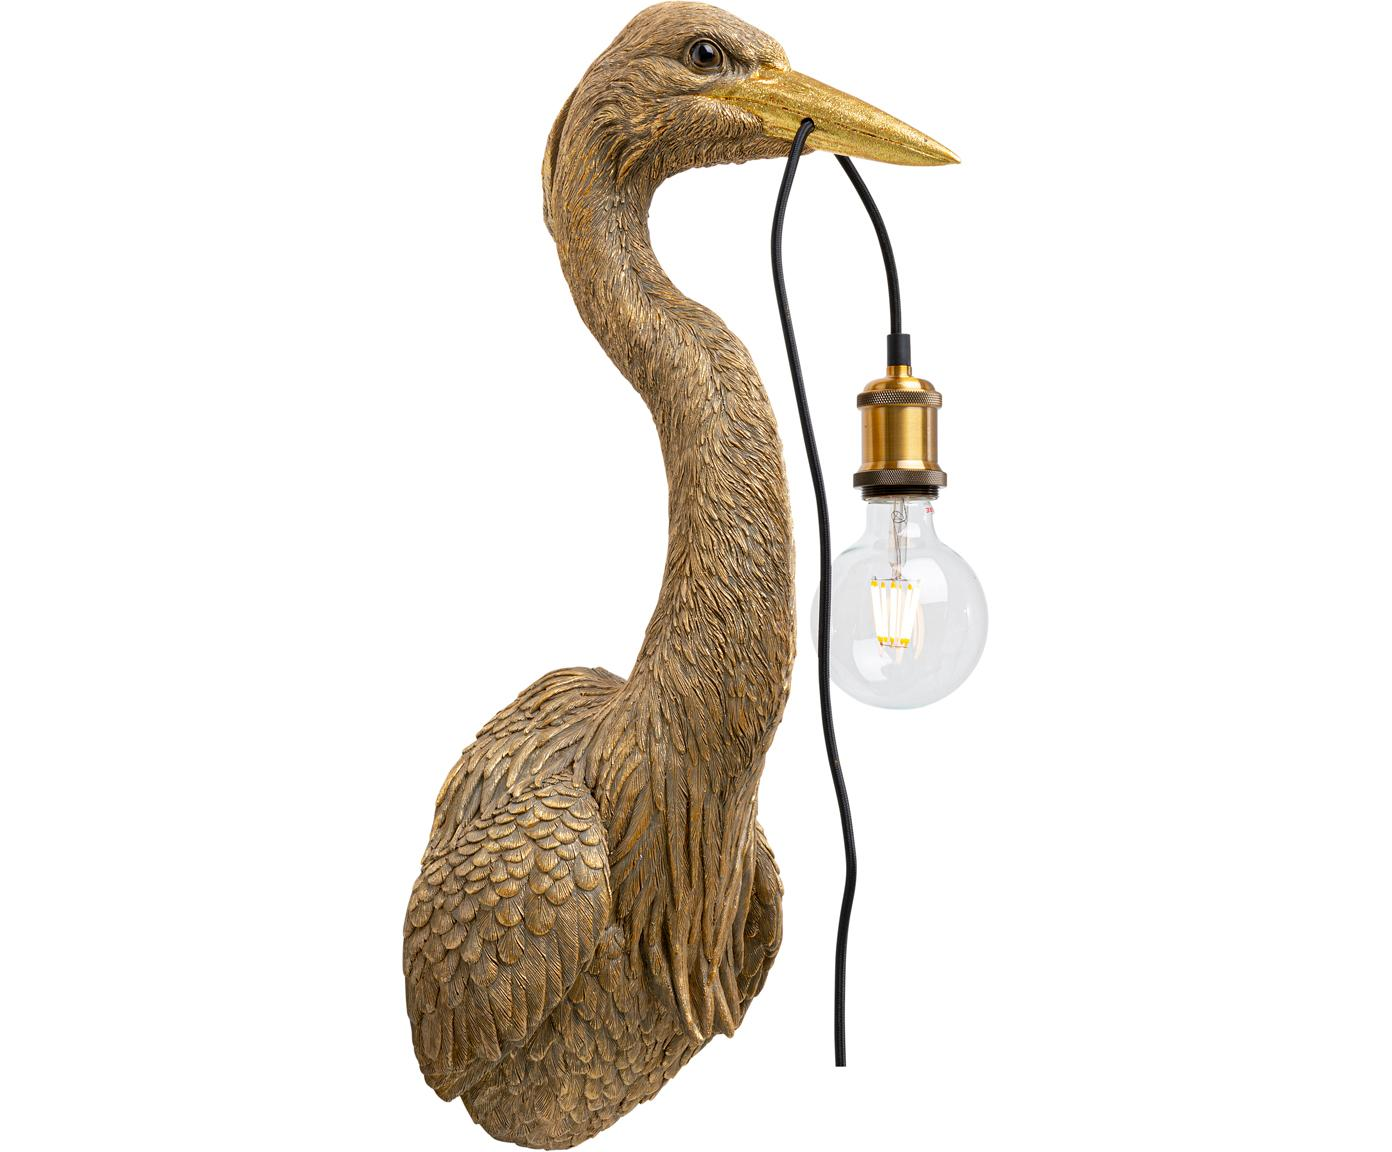 Lampe à poser finition antiquaire Heron, Brun